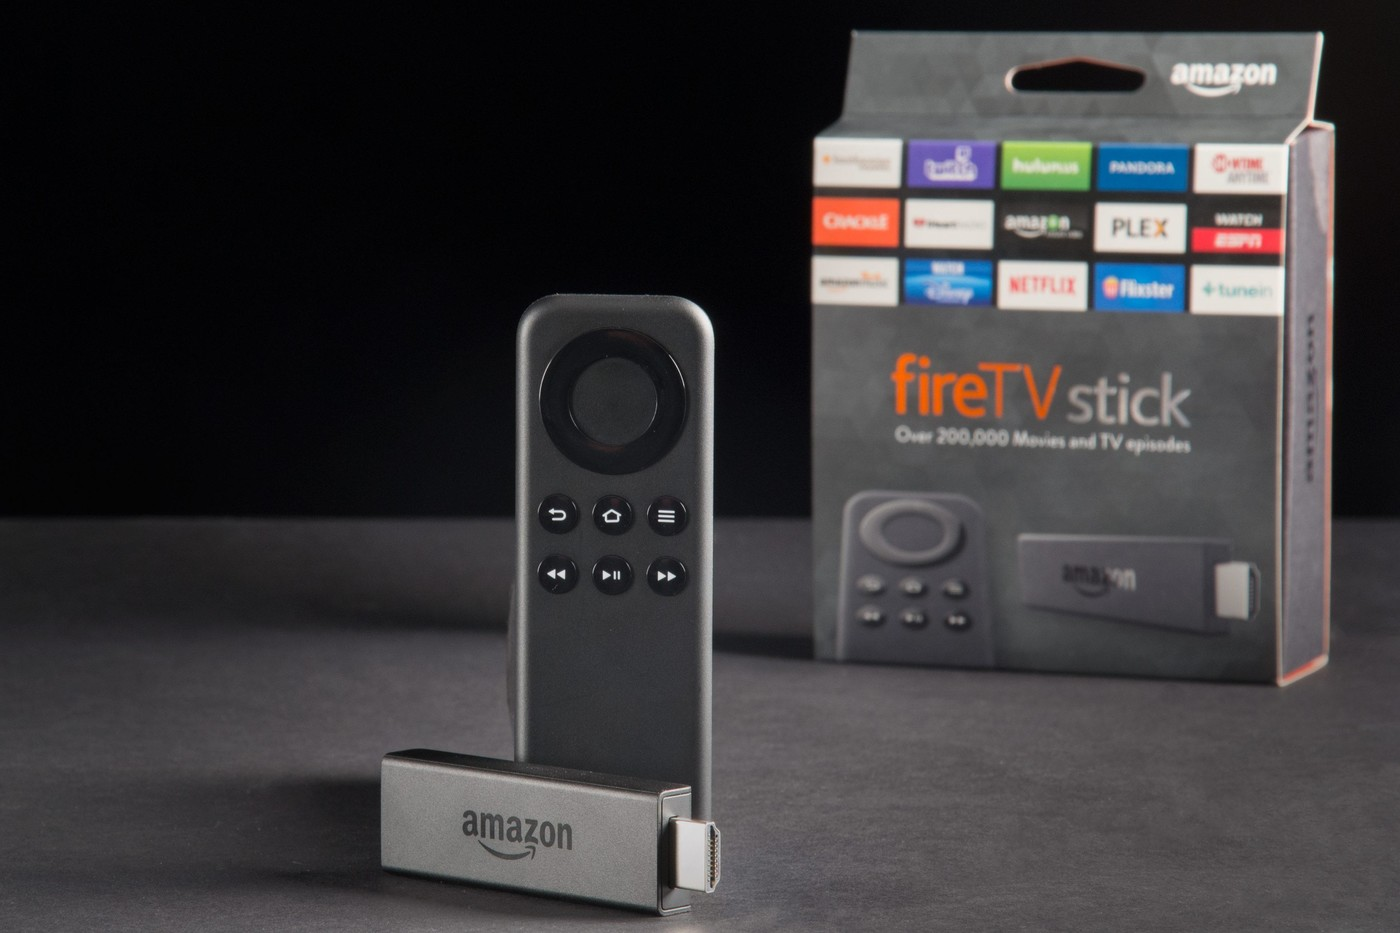 A must-have accessory for anyone with a Fire TV stick